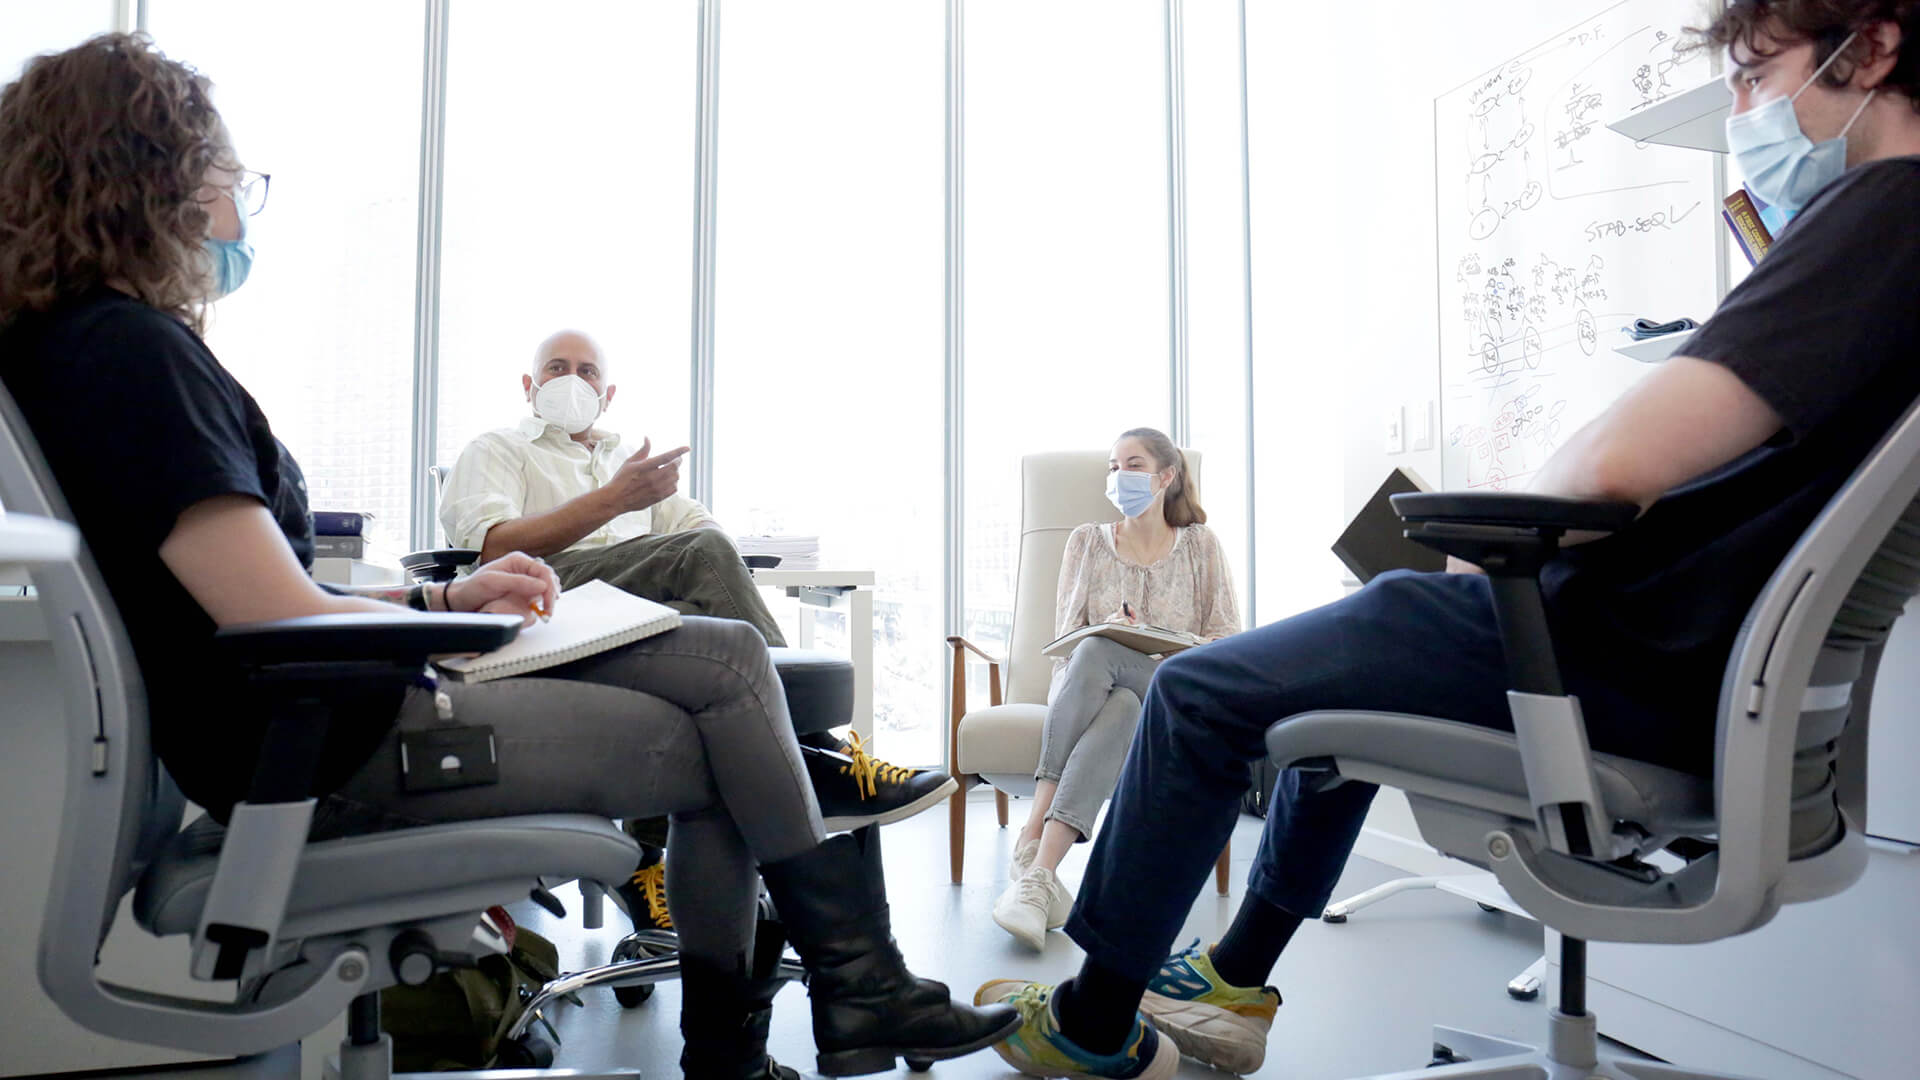 A group of people wearing masks sit in a circle in an office.